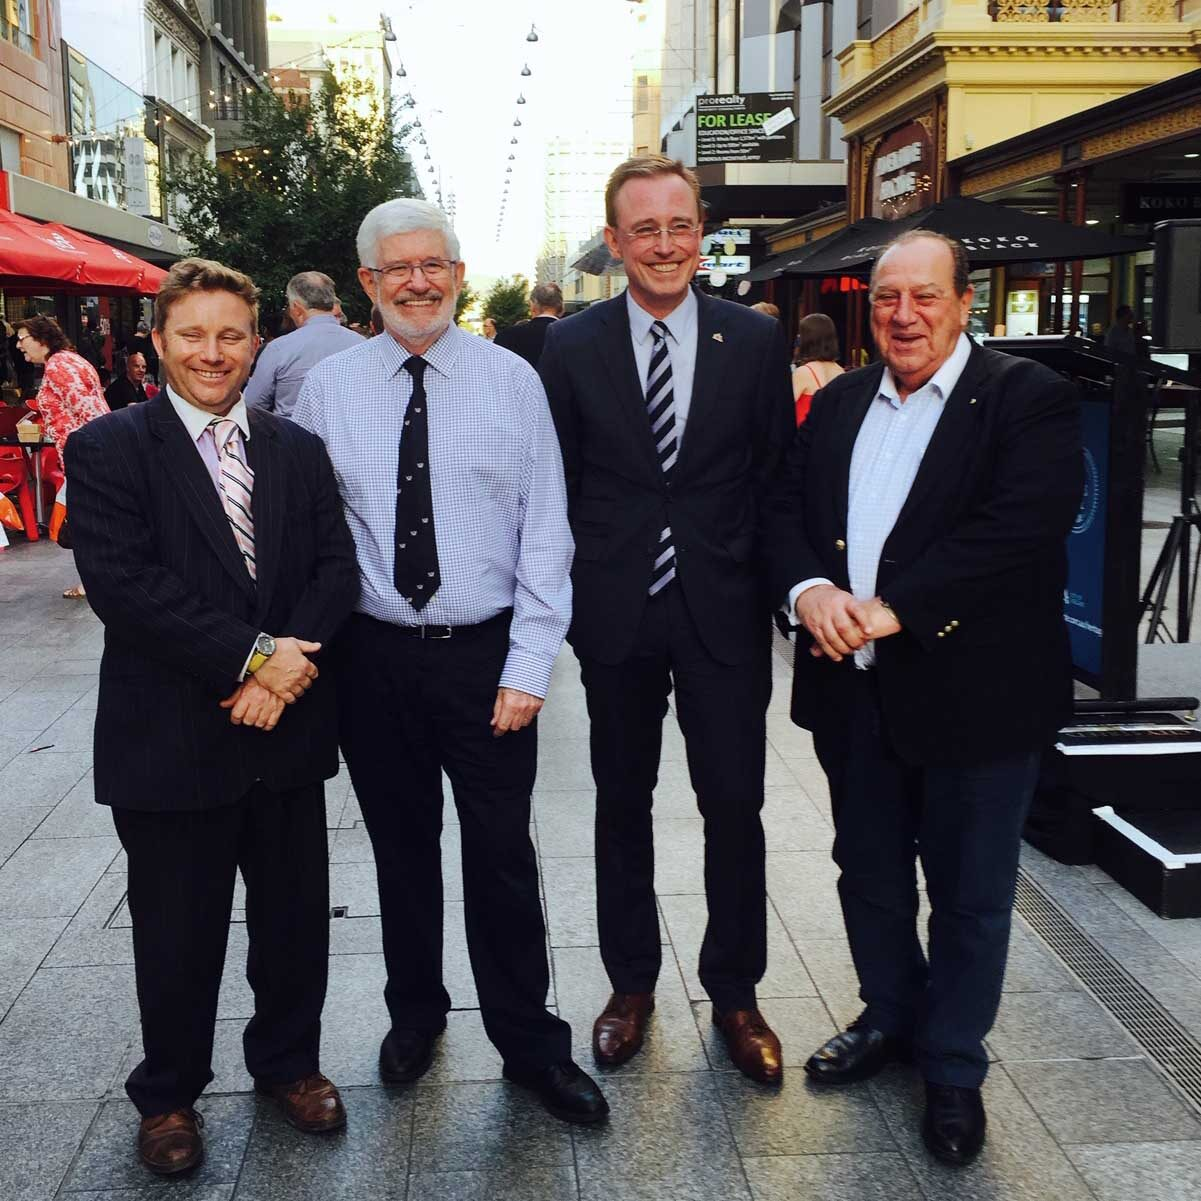 Lord Mayor Martin Haese with Councillor Sandy Wilkinson Keith Conlon OAM and Theo Maras AM City of Adelaide Heritage Incentive Scheme